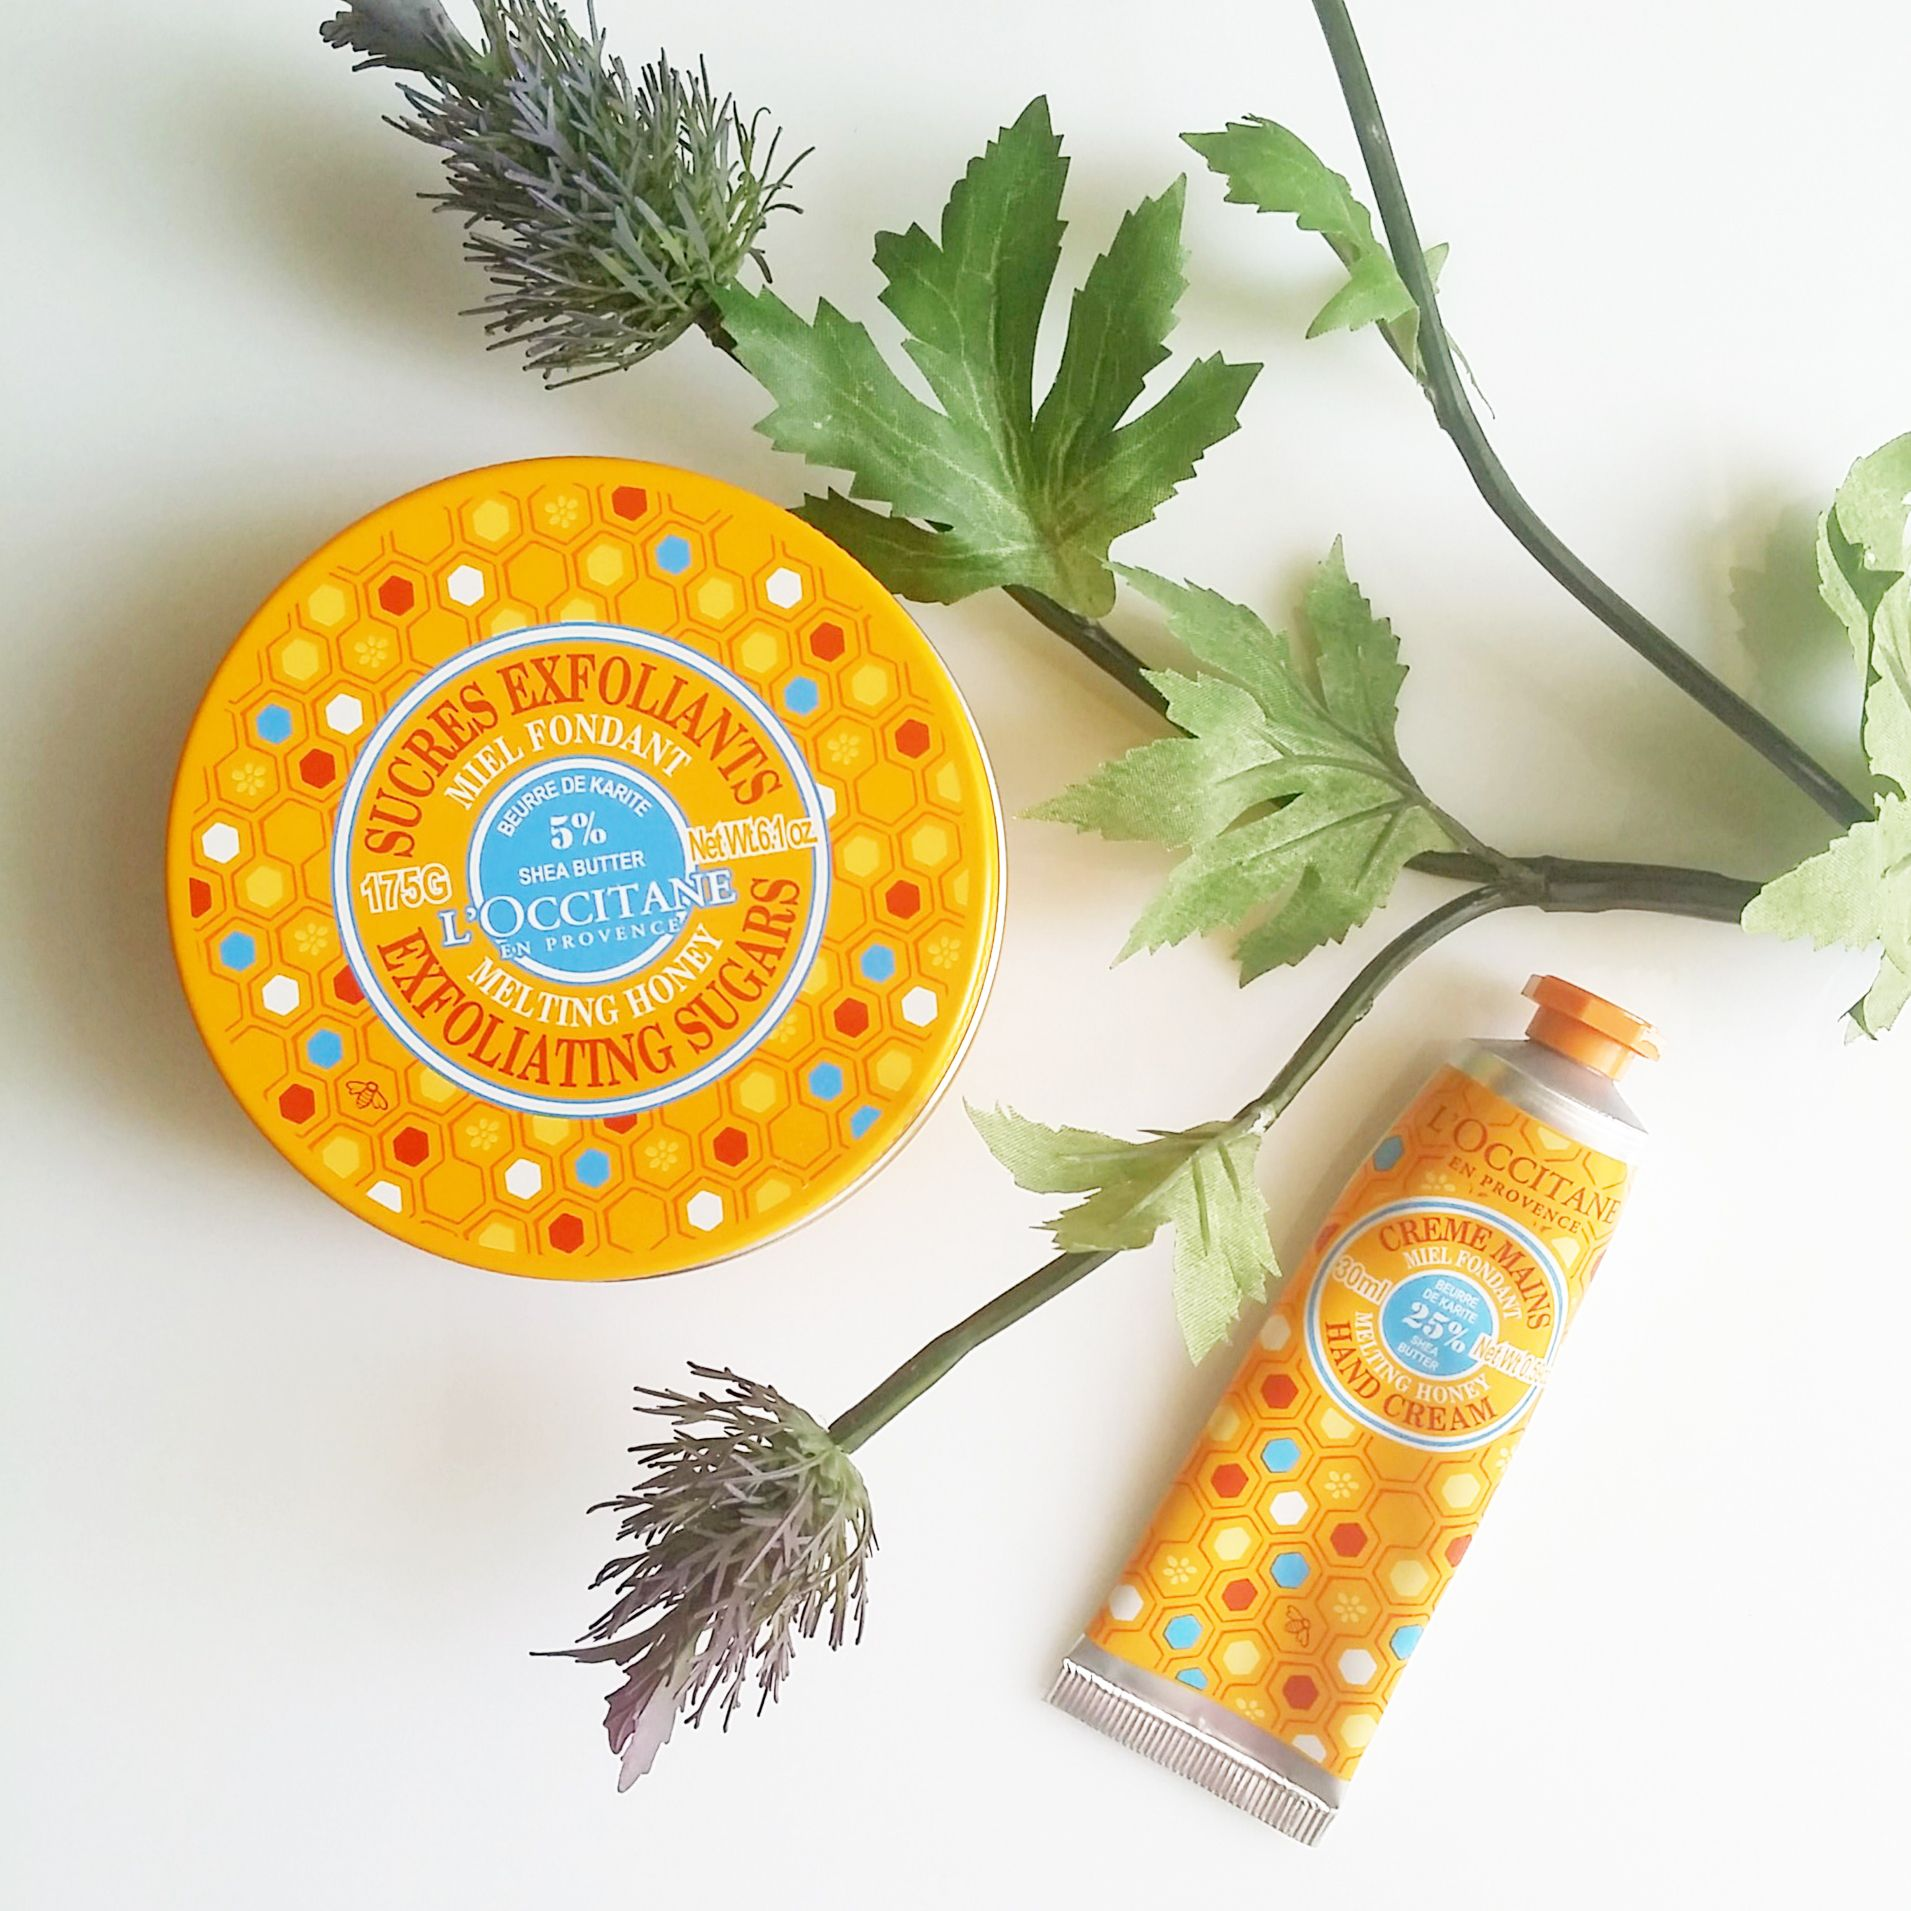 The latest L'occitane en Provence Products   #loccitaneenprovence #thedailylady